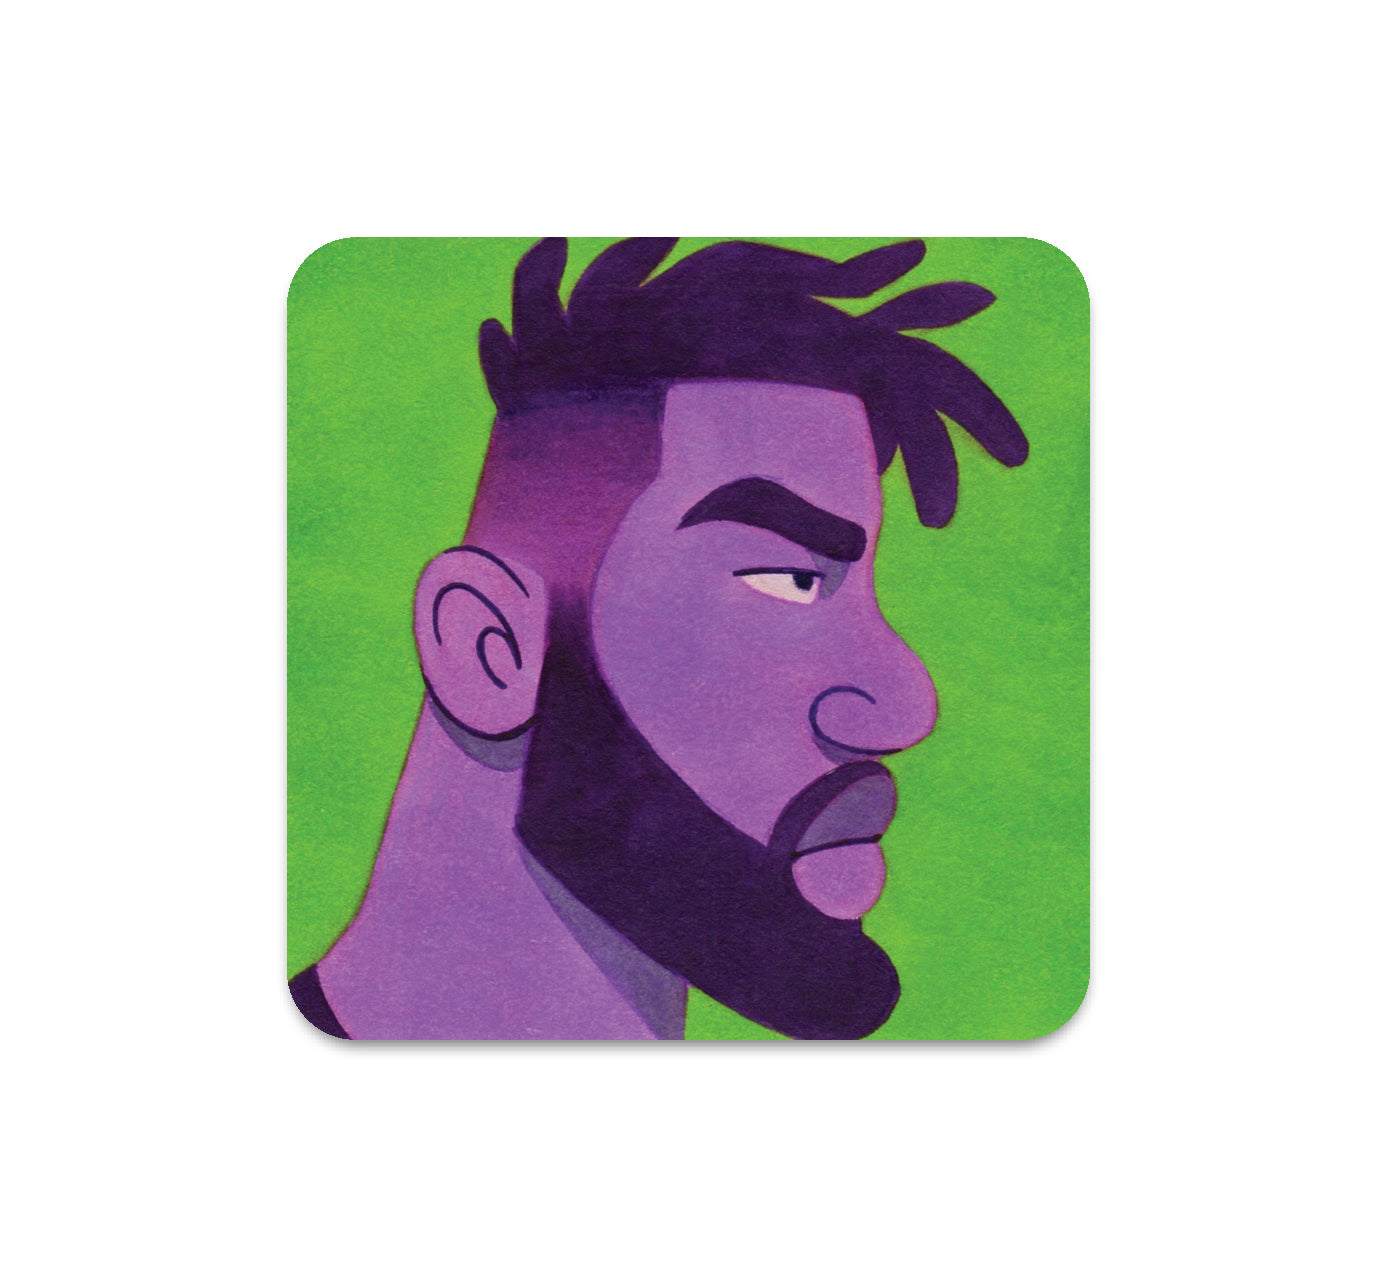 S5 ActionHankBeard - 4 Coaster